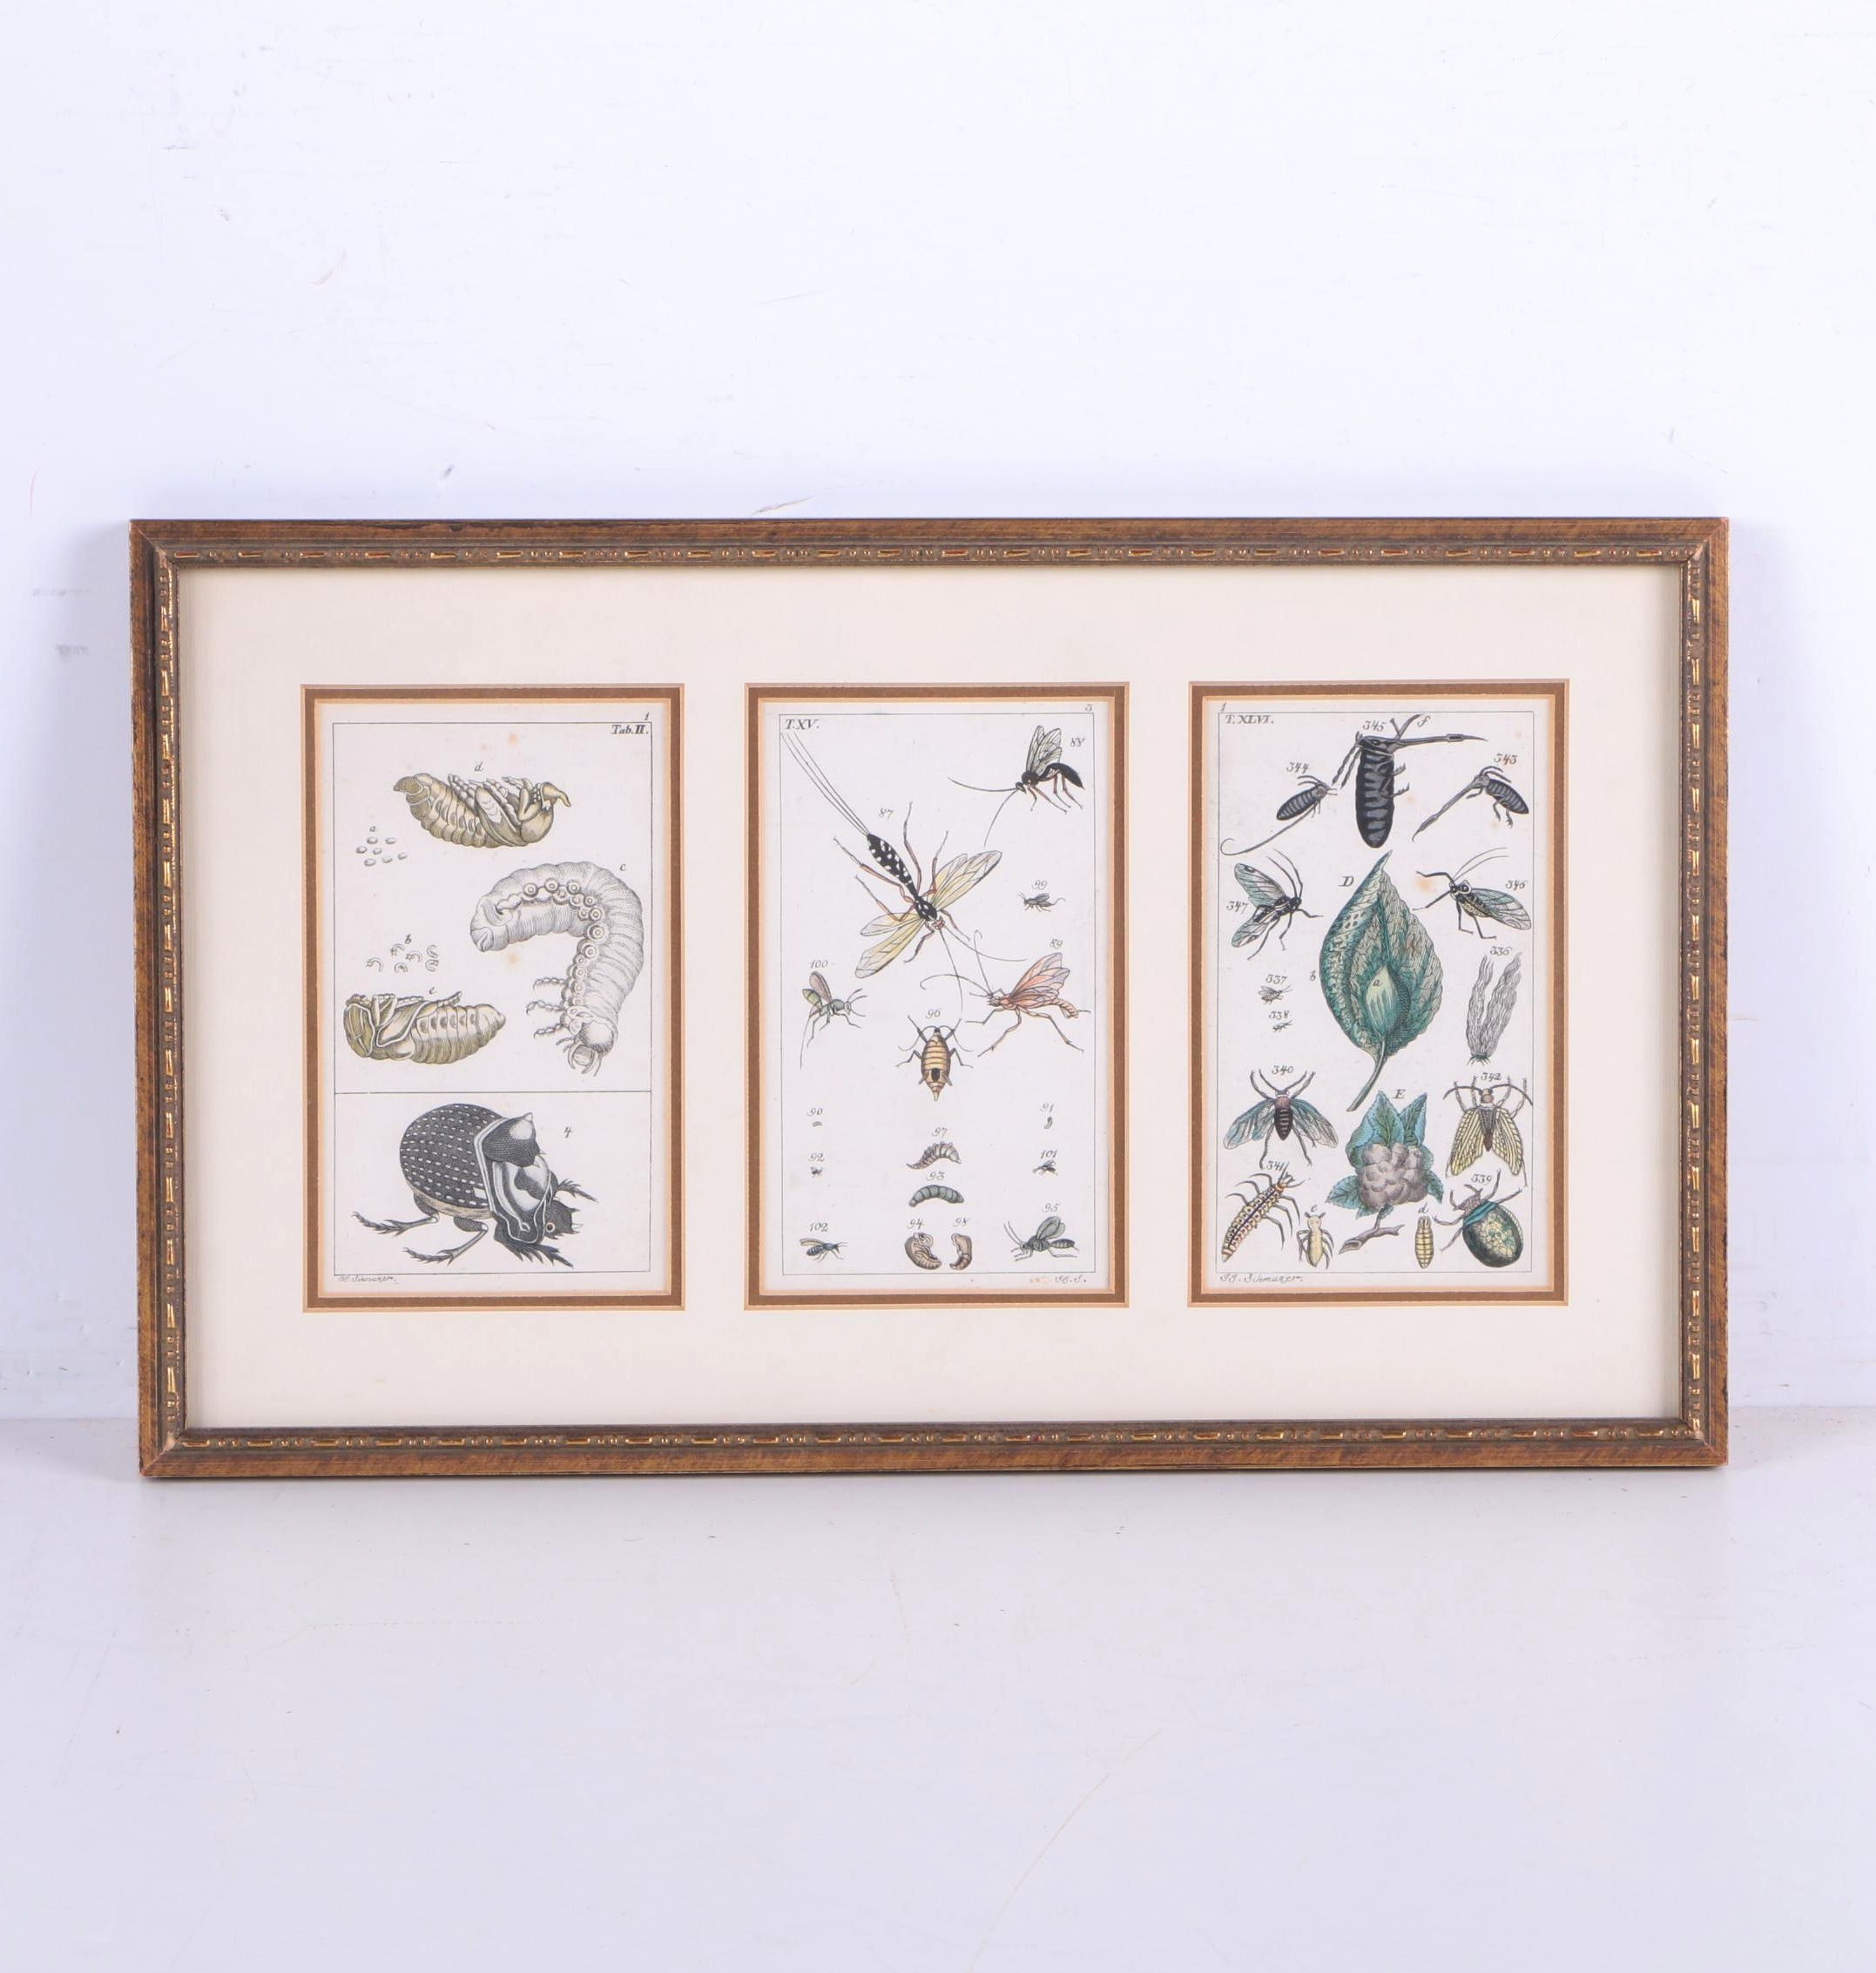 Hand Colored Engravings on Paper After J.J. Schmuzer of Insects